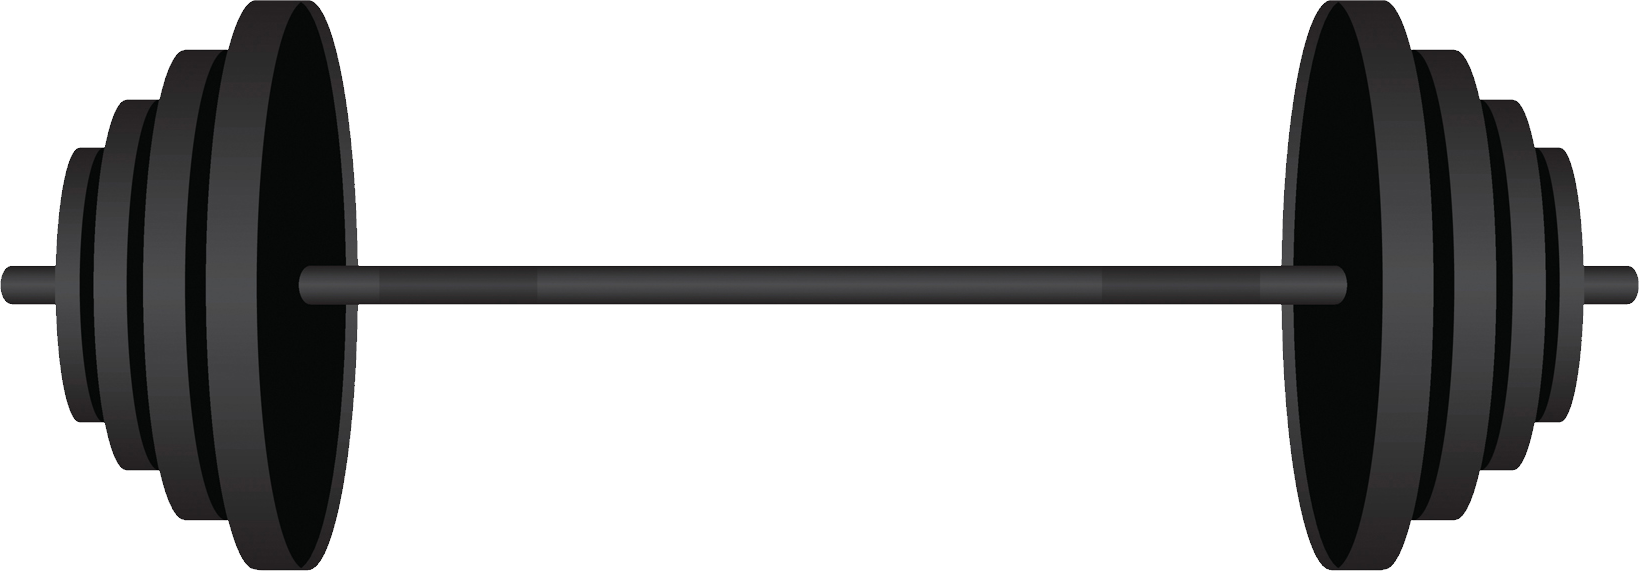 Bending barbell png. Hd transparent images pluspng